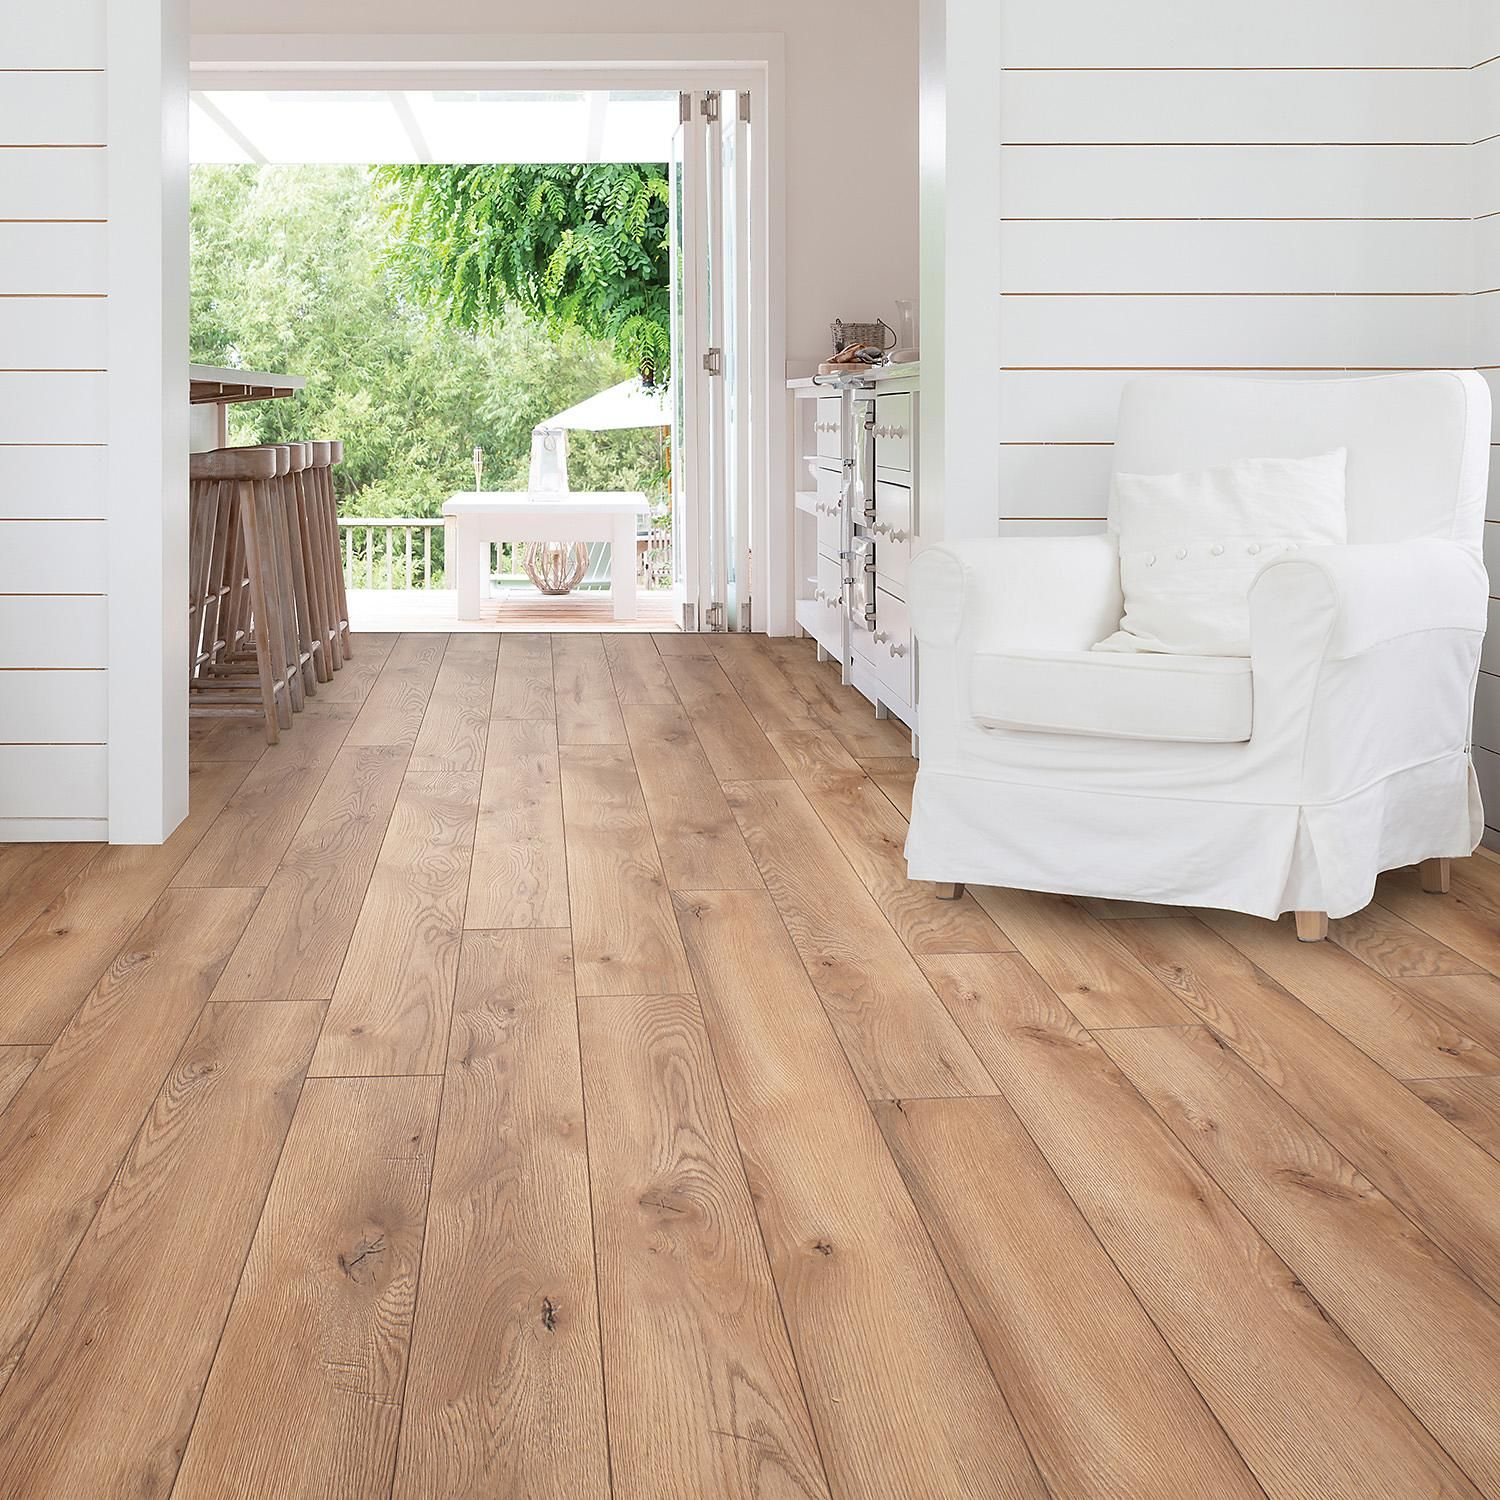 Select Surfaces Laminate Flooring Canyon Oak 16 91 Sq Ft Sam S Club In 2020 Wood Floors Wide Plank Hardwood Floor Colors Oak Laminate Flooring